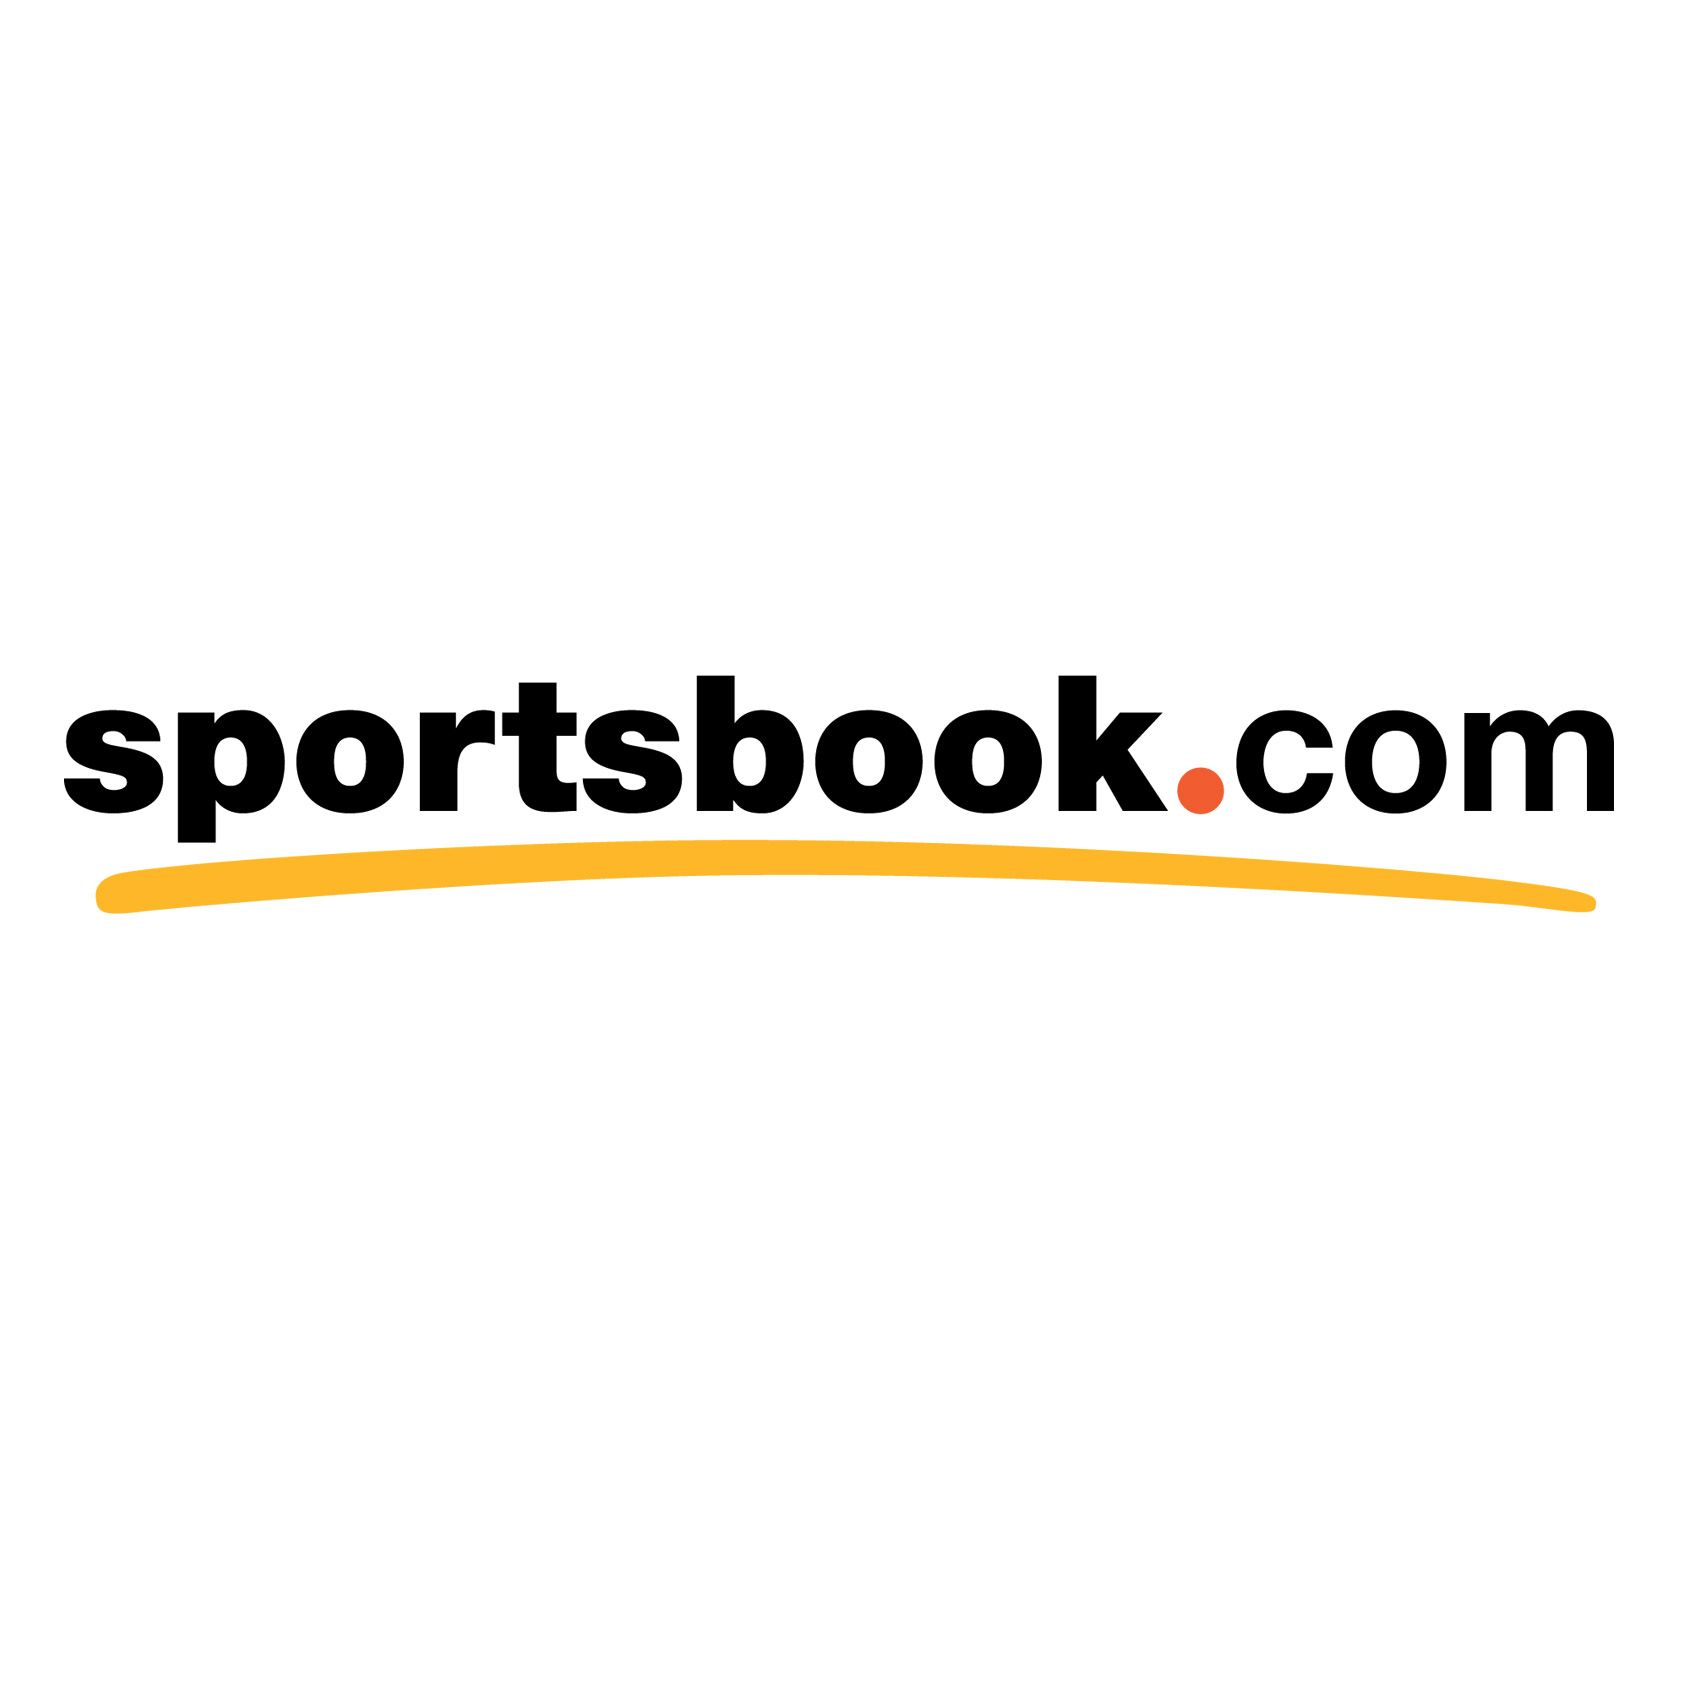 Sportsbook ag contact number